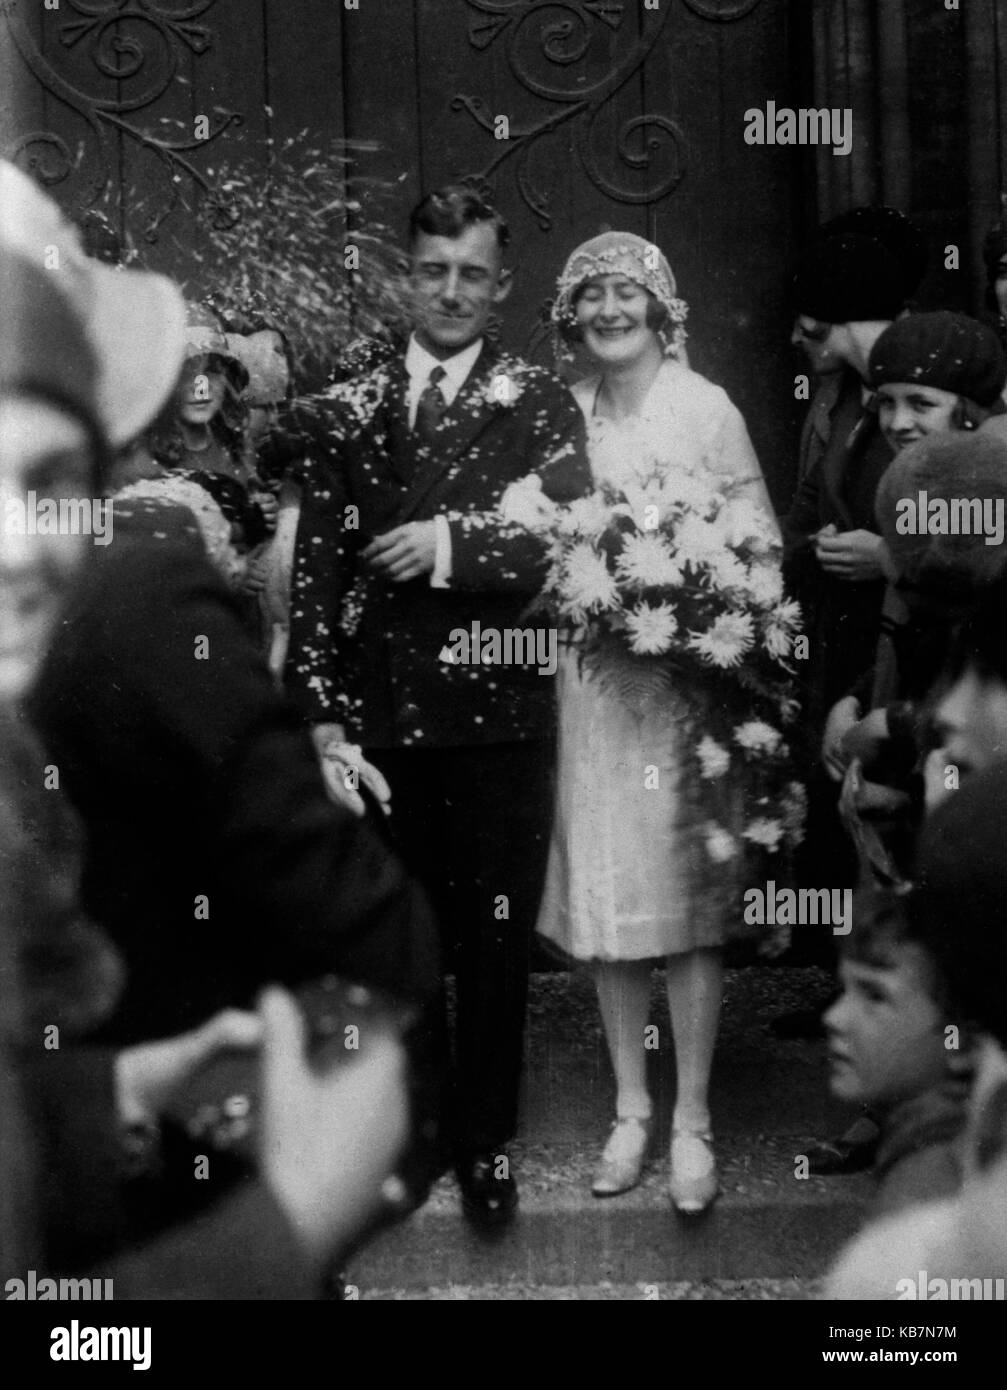 AJAXNETPHOTO. 1910-1920 (APPROX). LOCATION UNKNOWN. - COUPLE JUST MARRIED.PHOTOGRAPHER:UNKNOWN© DIGITAL IMAGE - Stock Image